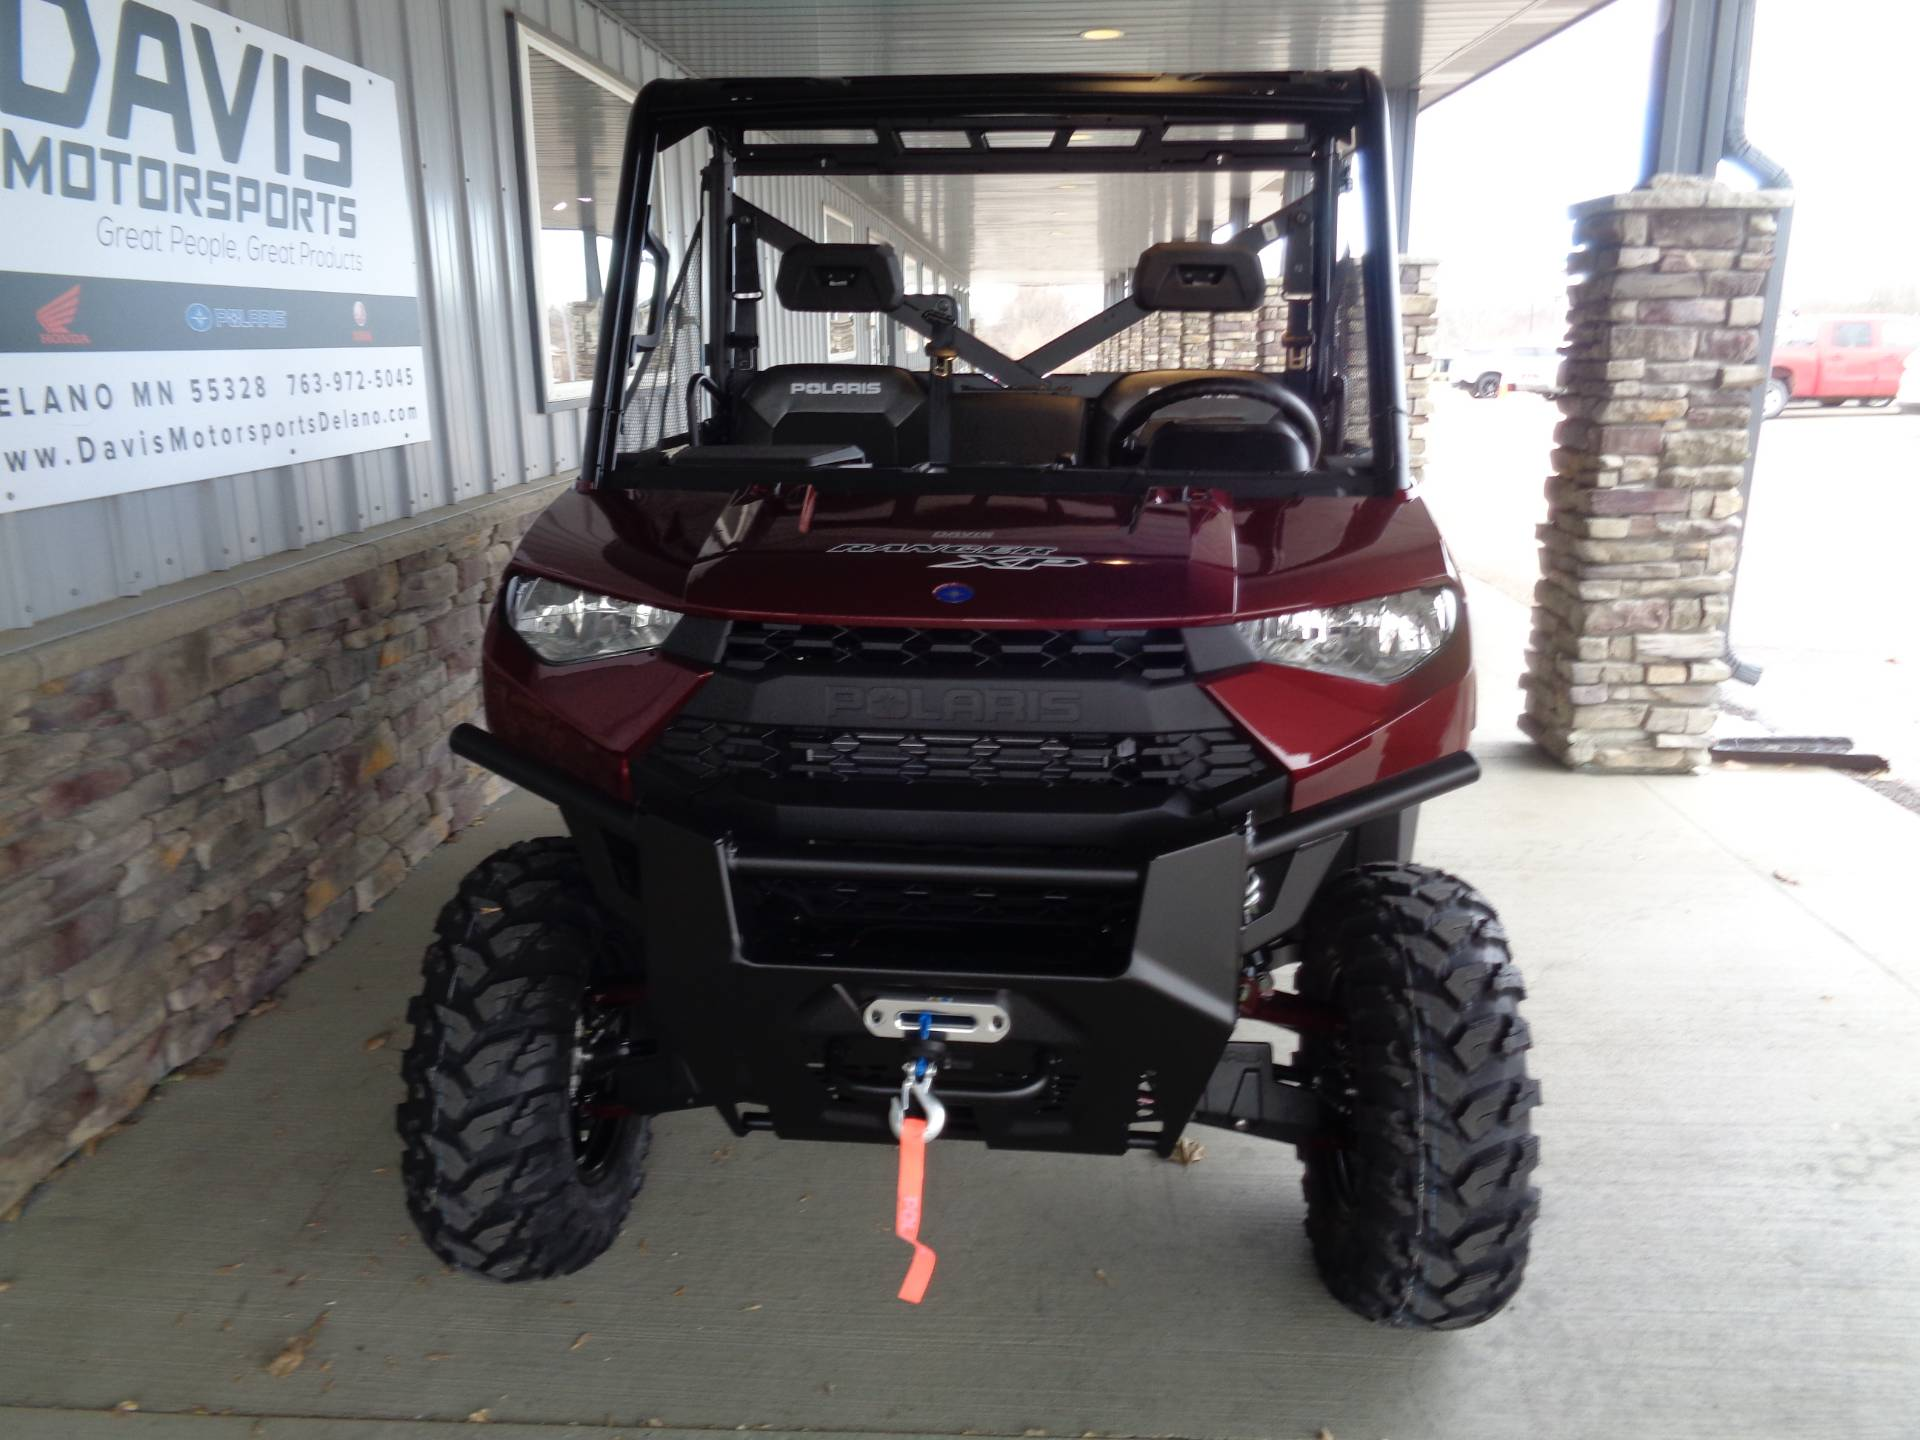 2021 Polaris Ranger XP 1000 Premium in Delano, Minnesota - Photo 12